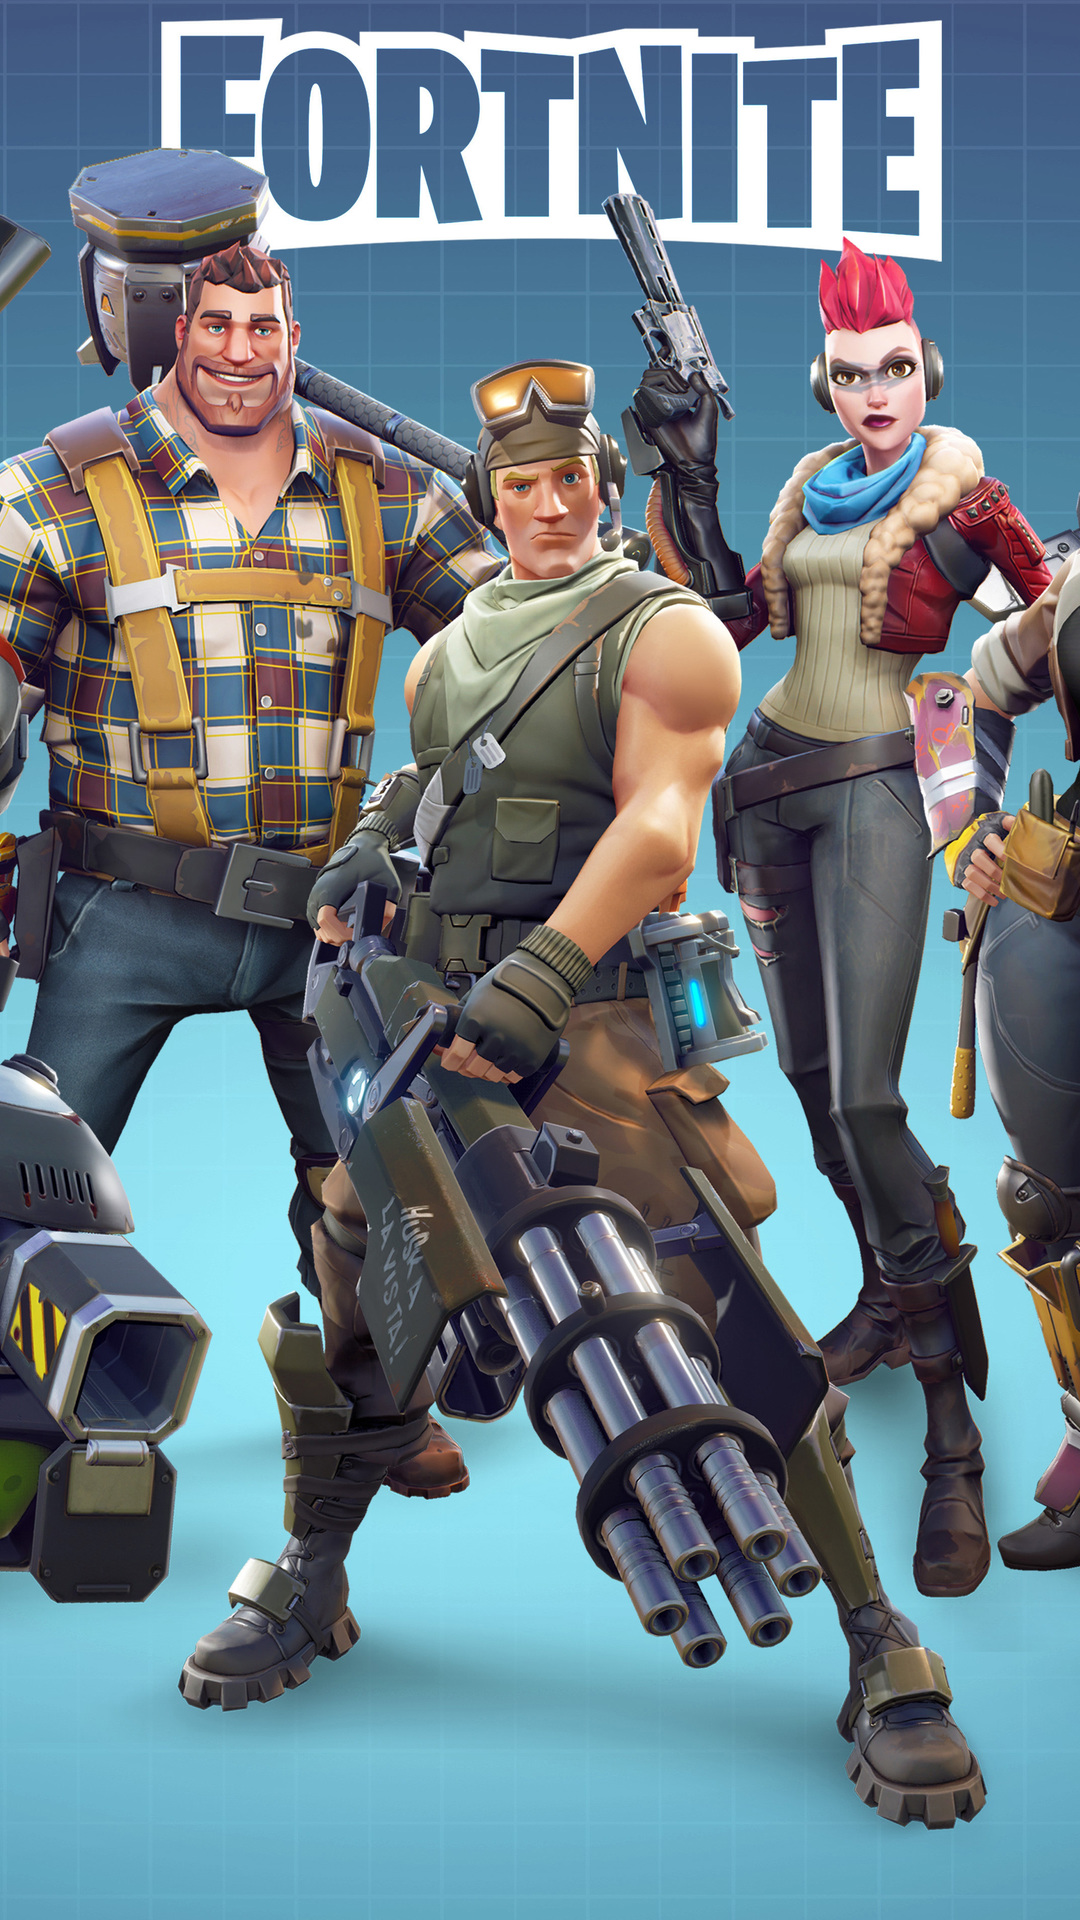 Fortnite Wallpaper For Iphone X 8 7 6 Free Download On 3wallpapers